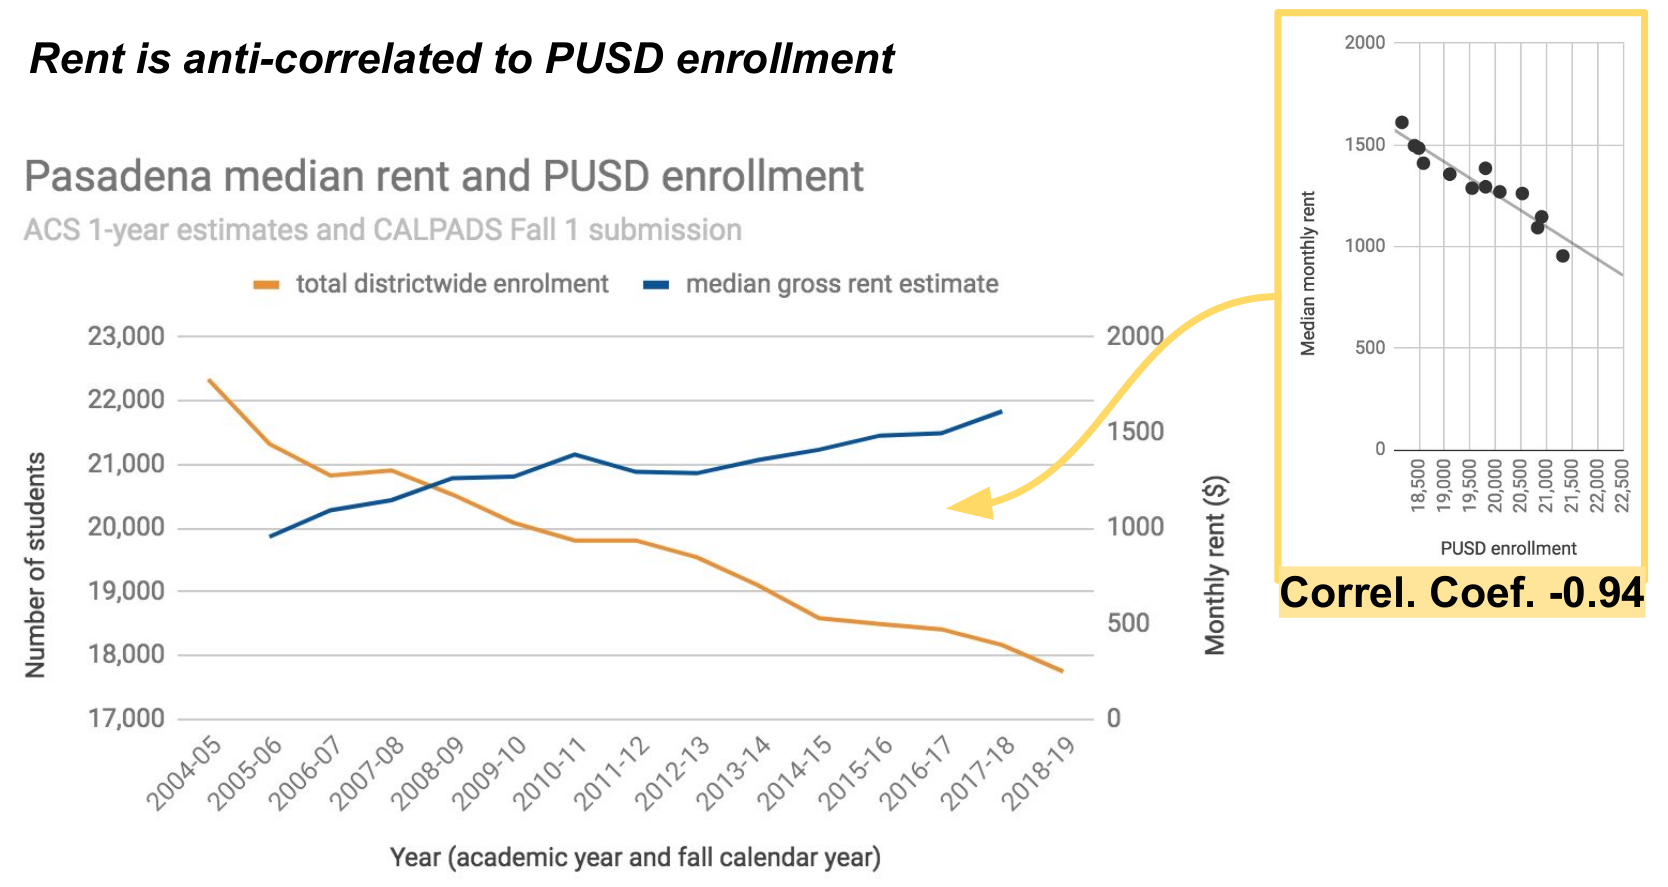 PUSD enrollement decrease